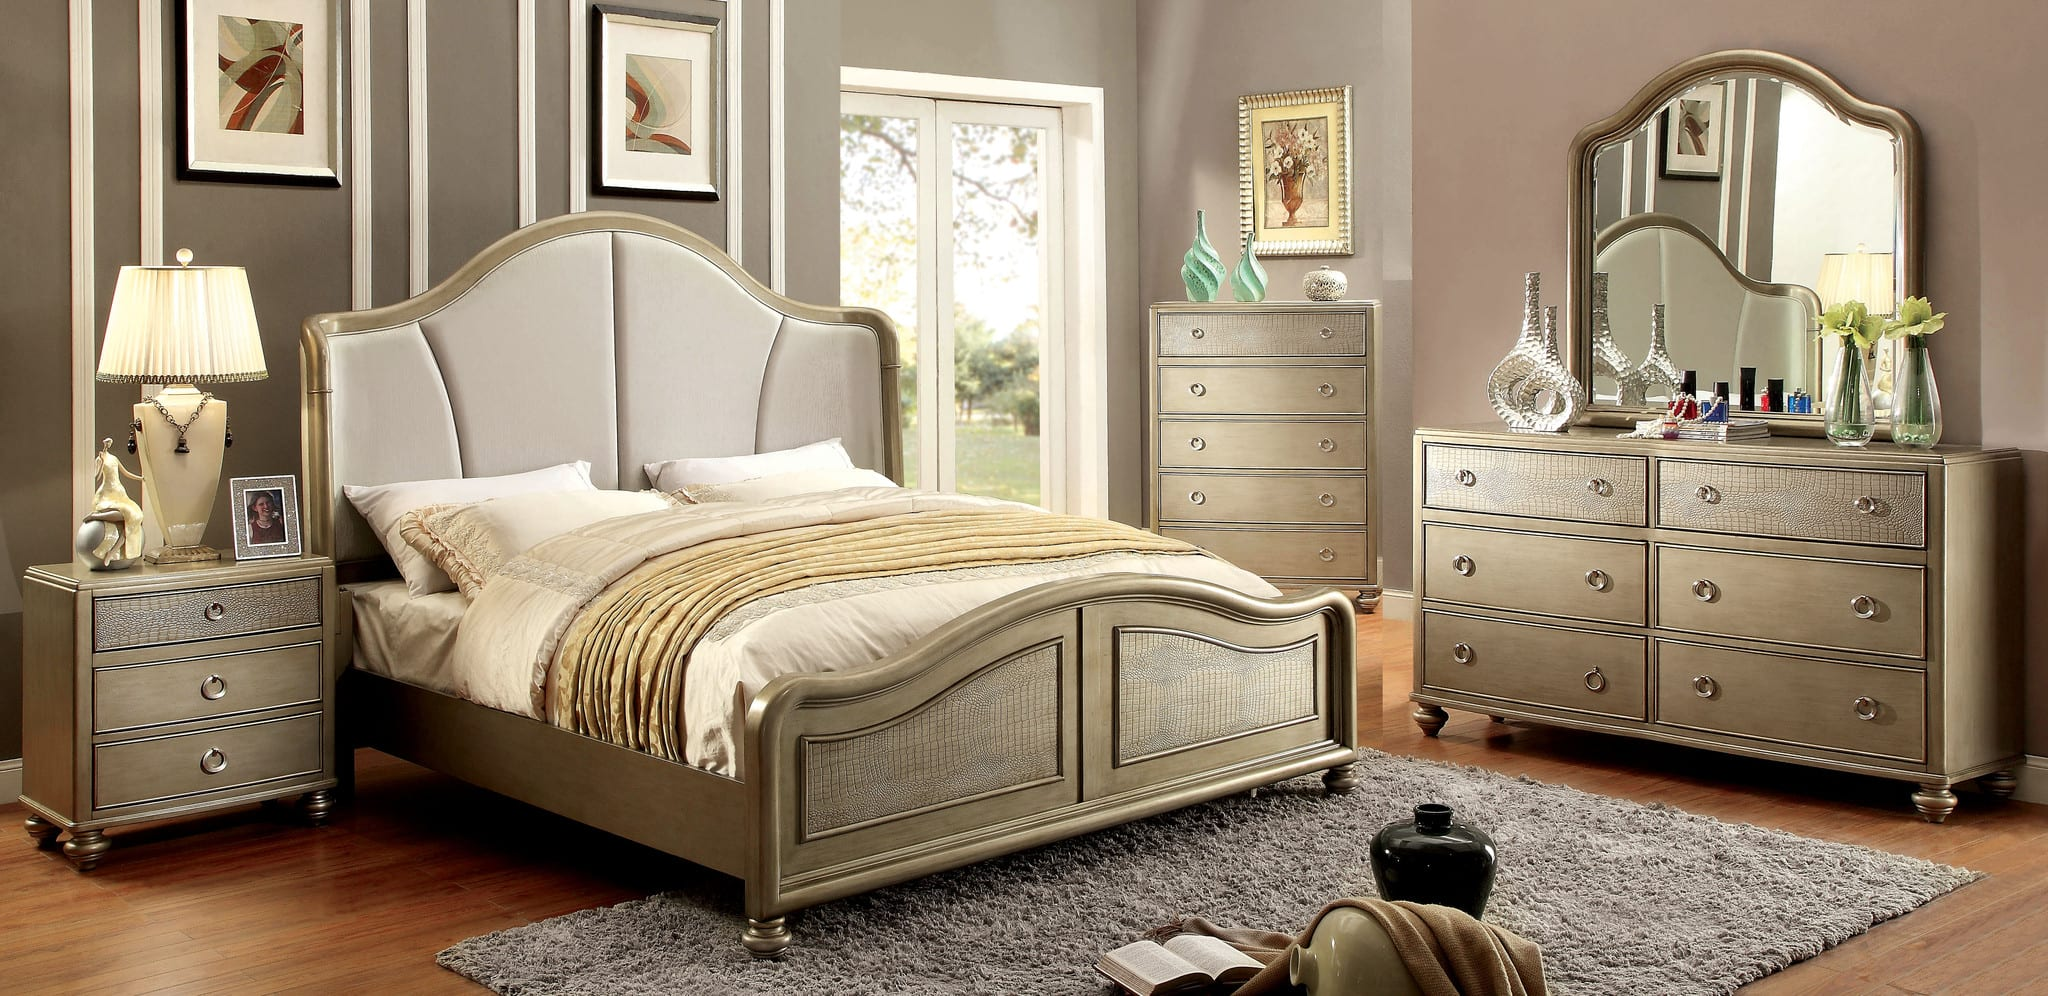 Bedroom Sets Sacramento nisha bed frame | mattress warehouse usa | portland, oregon